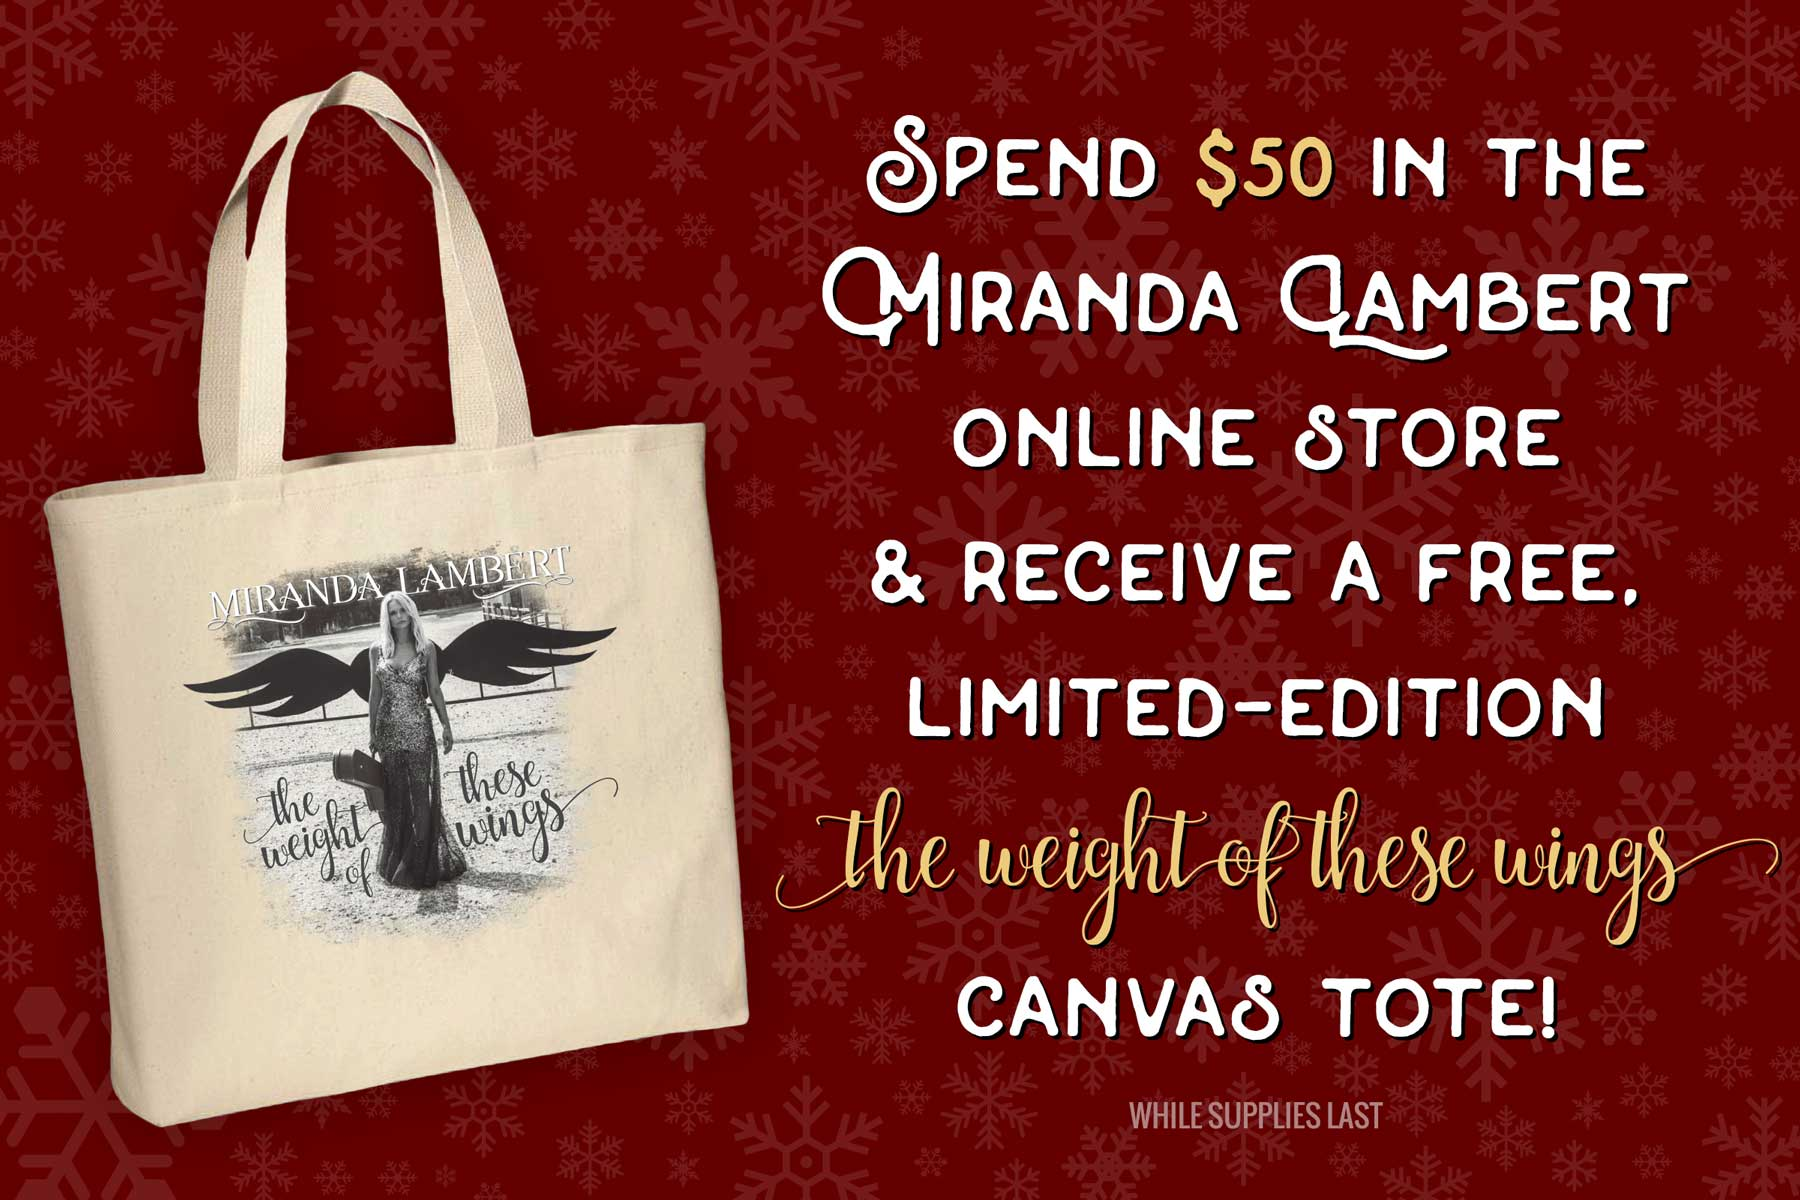 Spend $50 in the Miranda Lambert online store & receive a free, limited-edition The Weight of These Wings canvas tote!